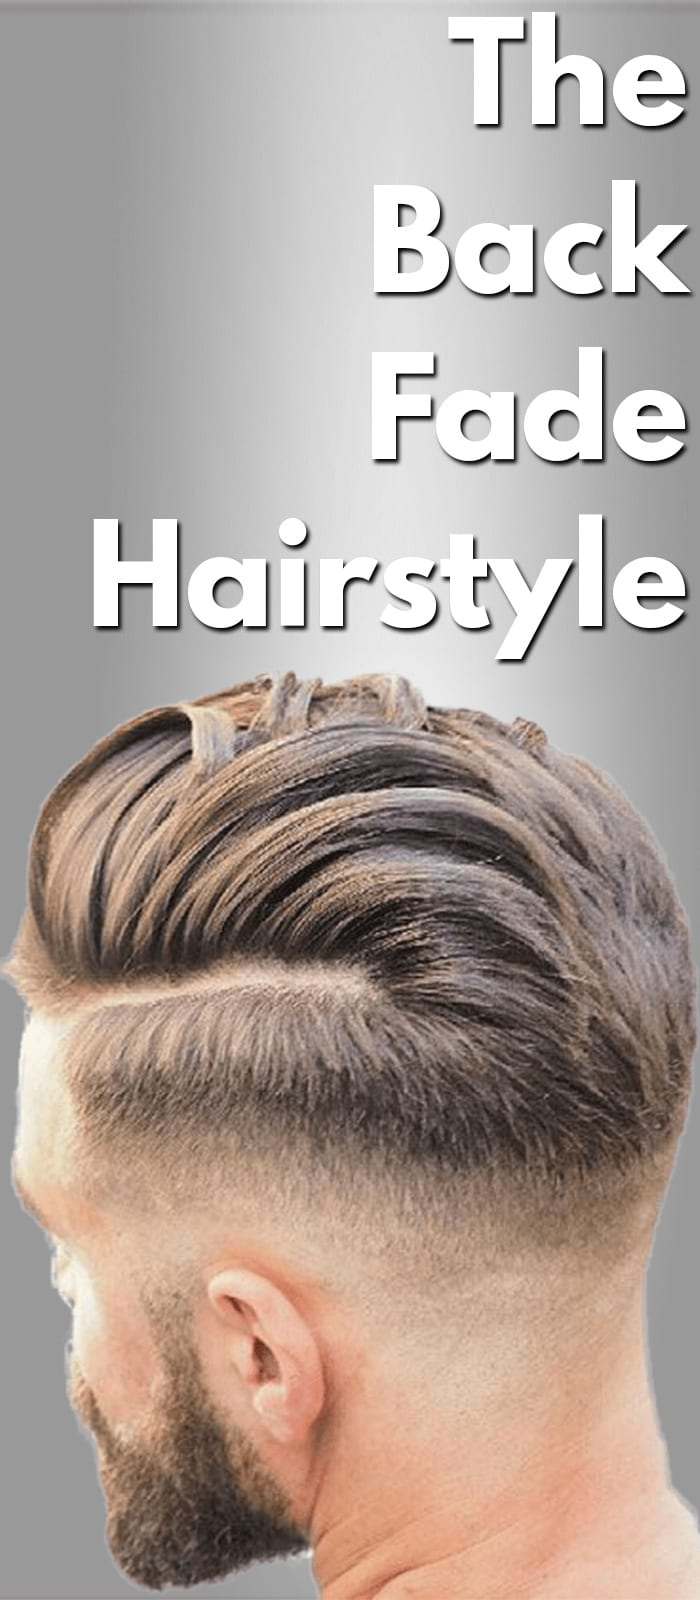 The-Back-Fade-Hairstyle.